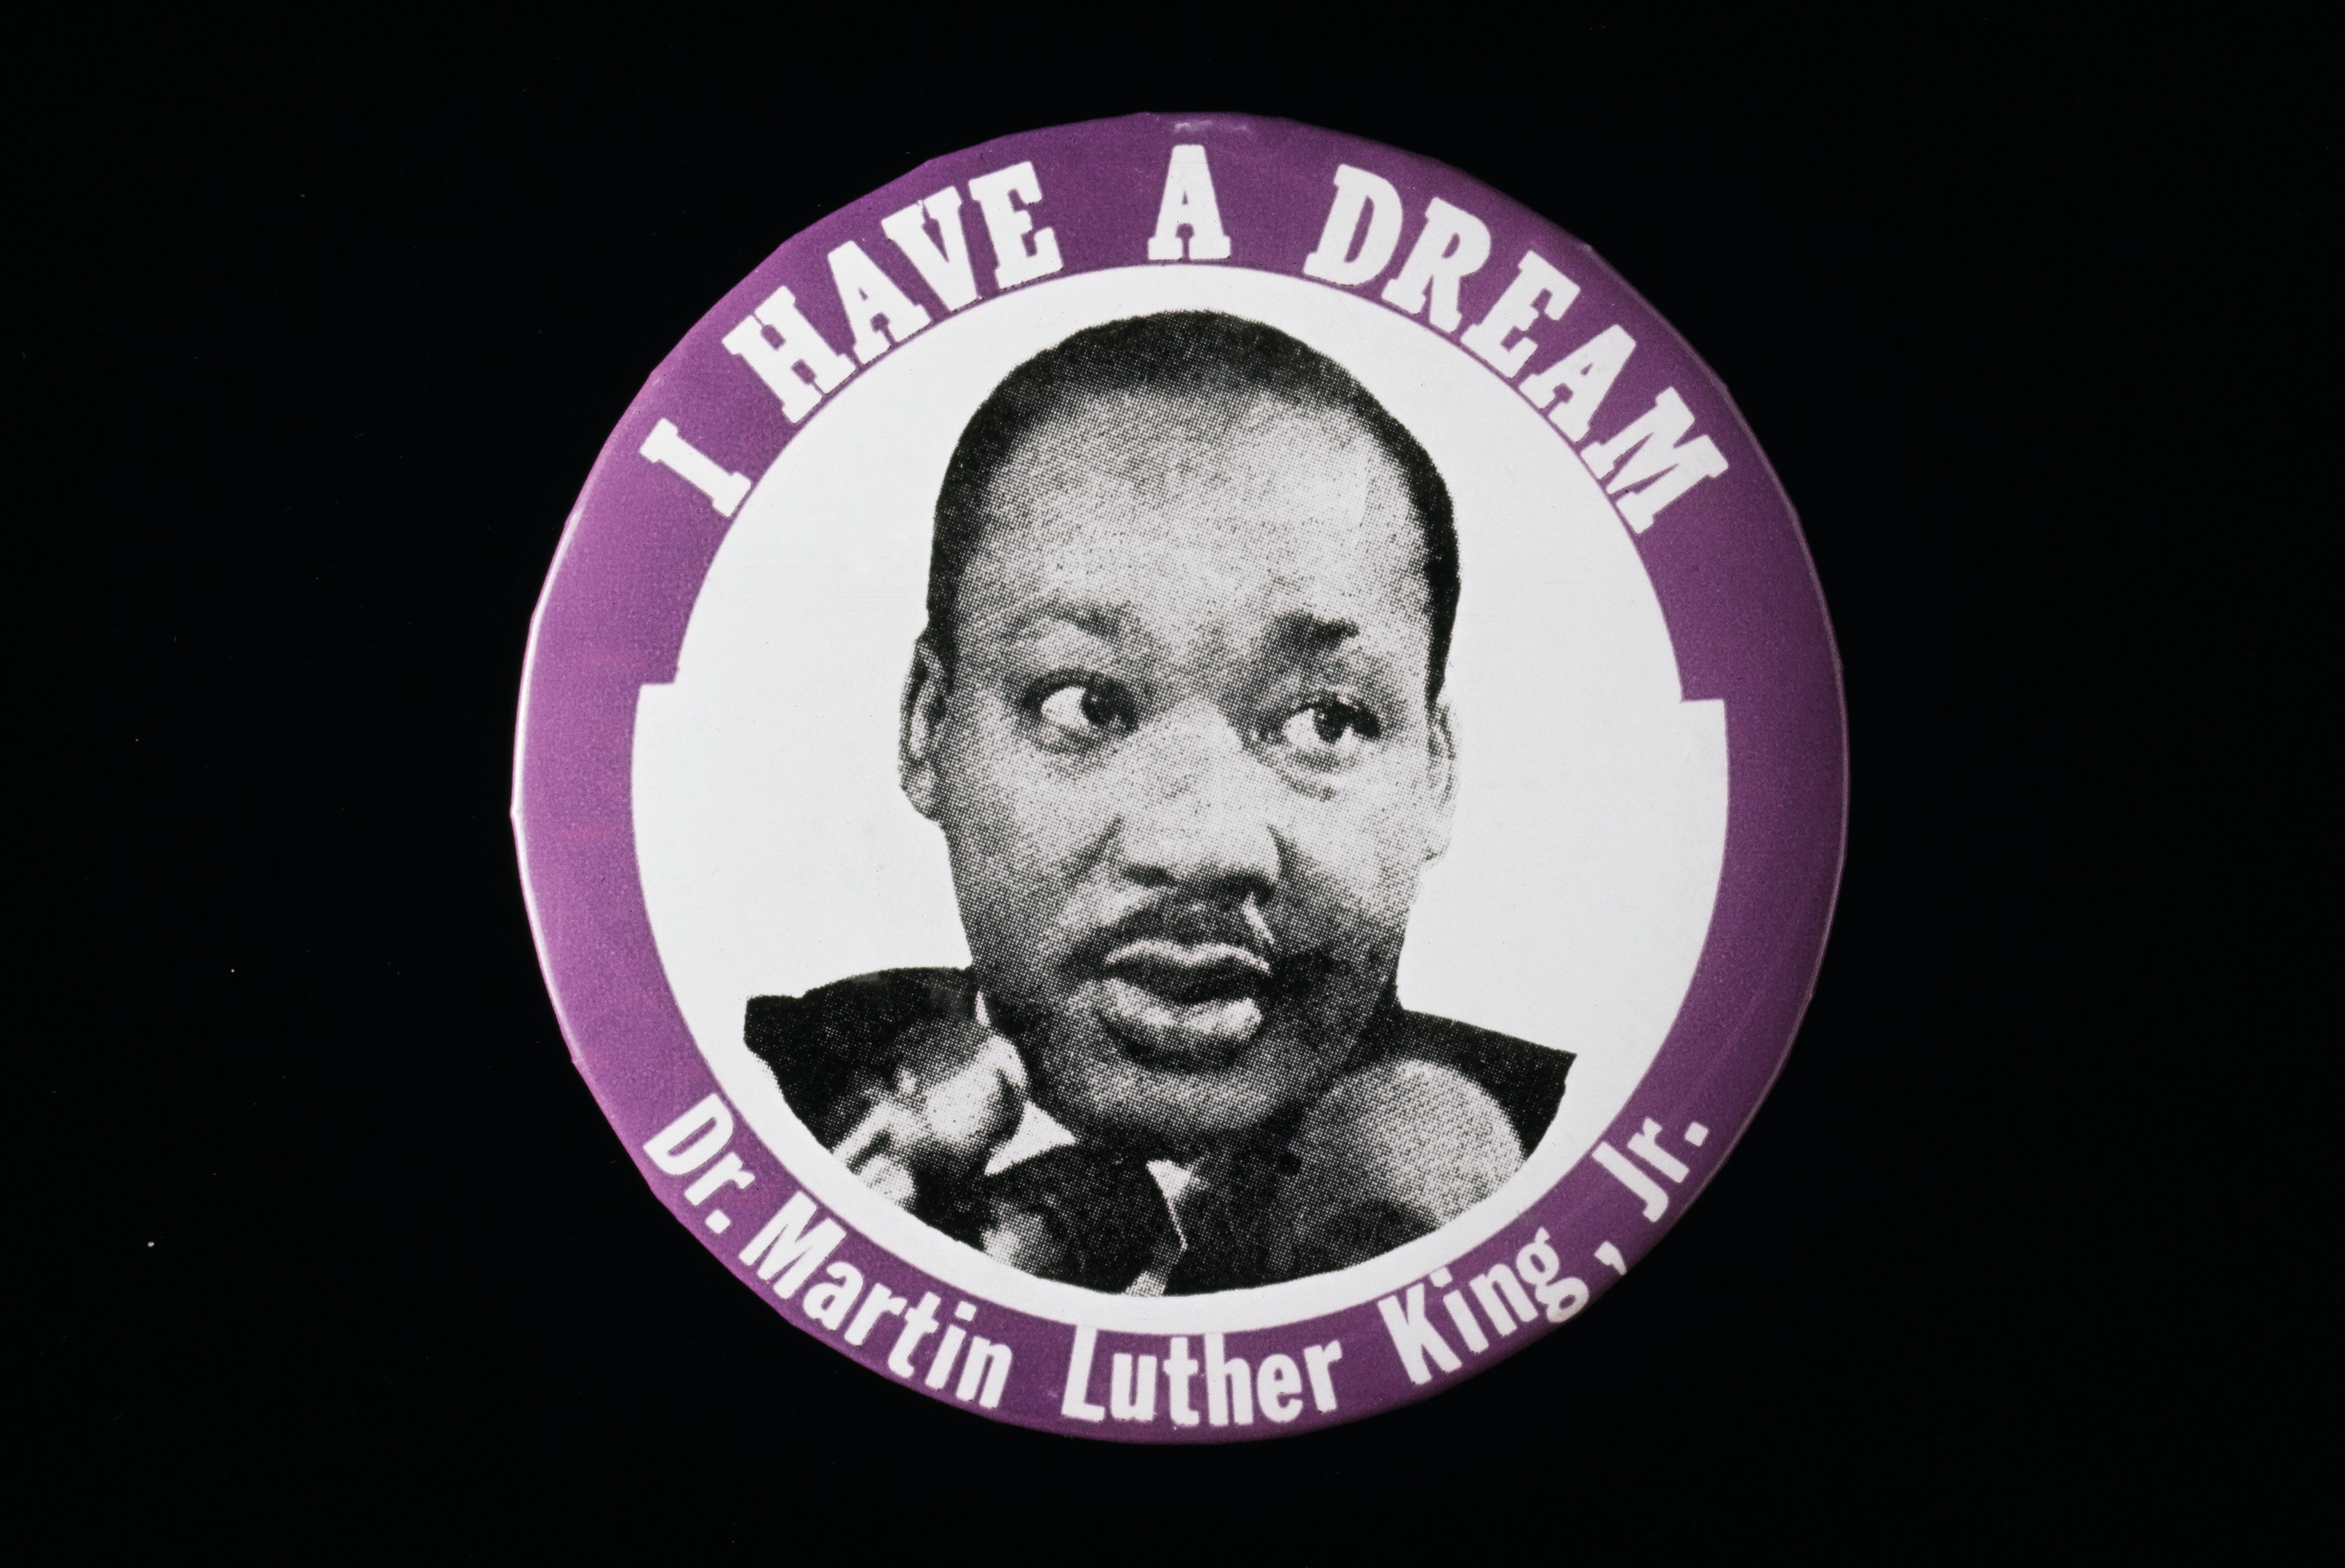 A badge featuring American civil rights activist Martin Luther King